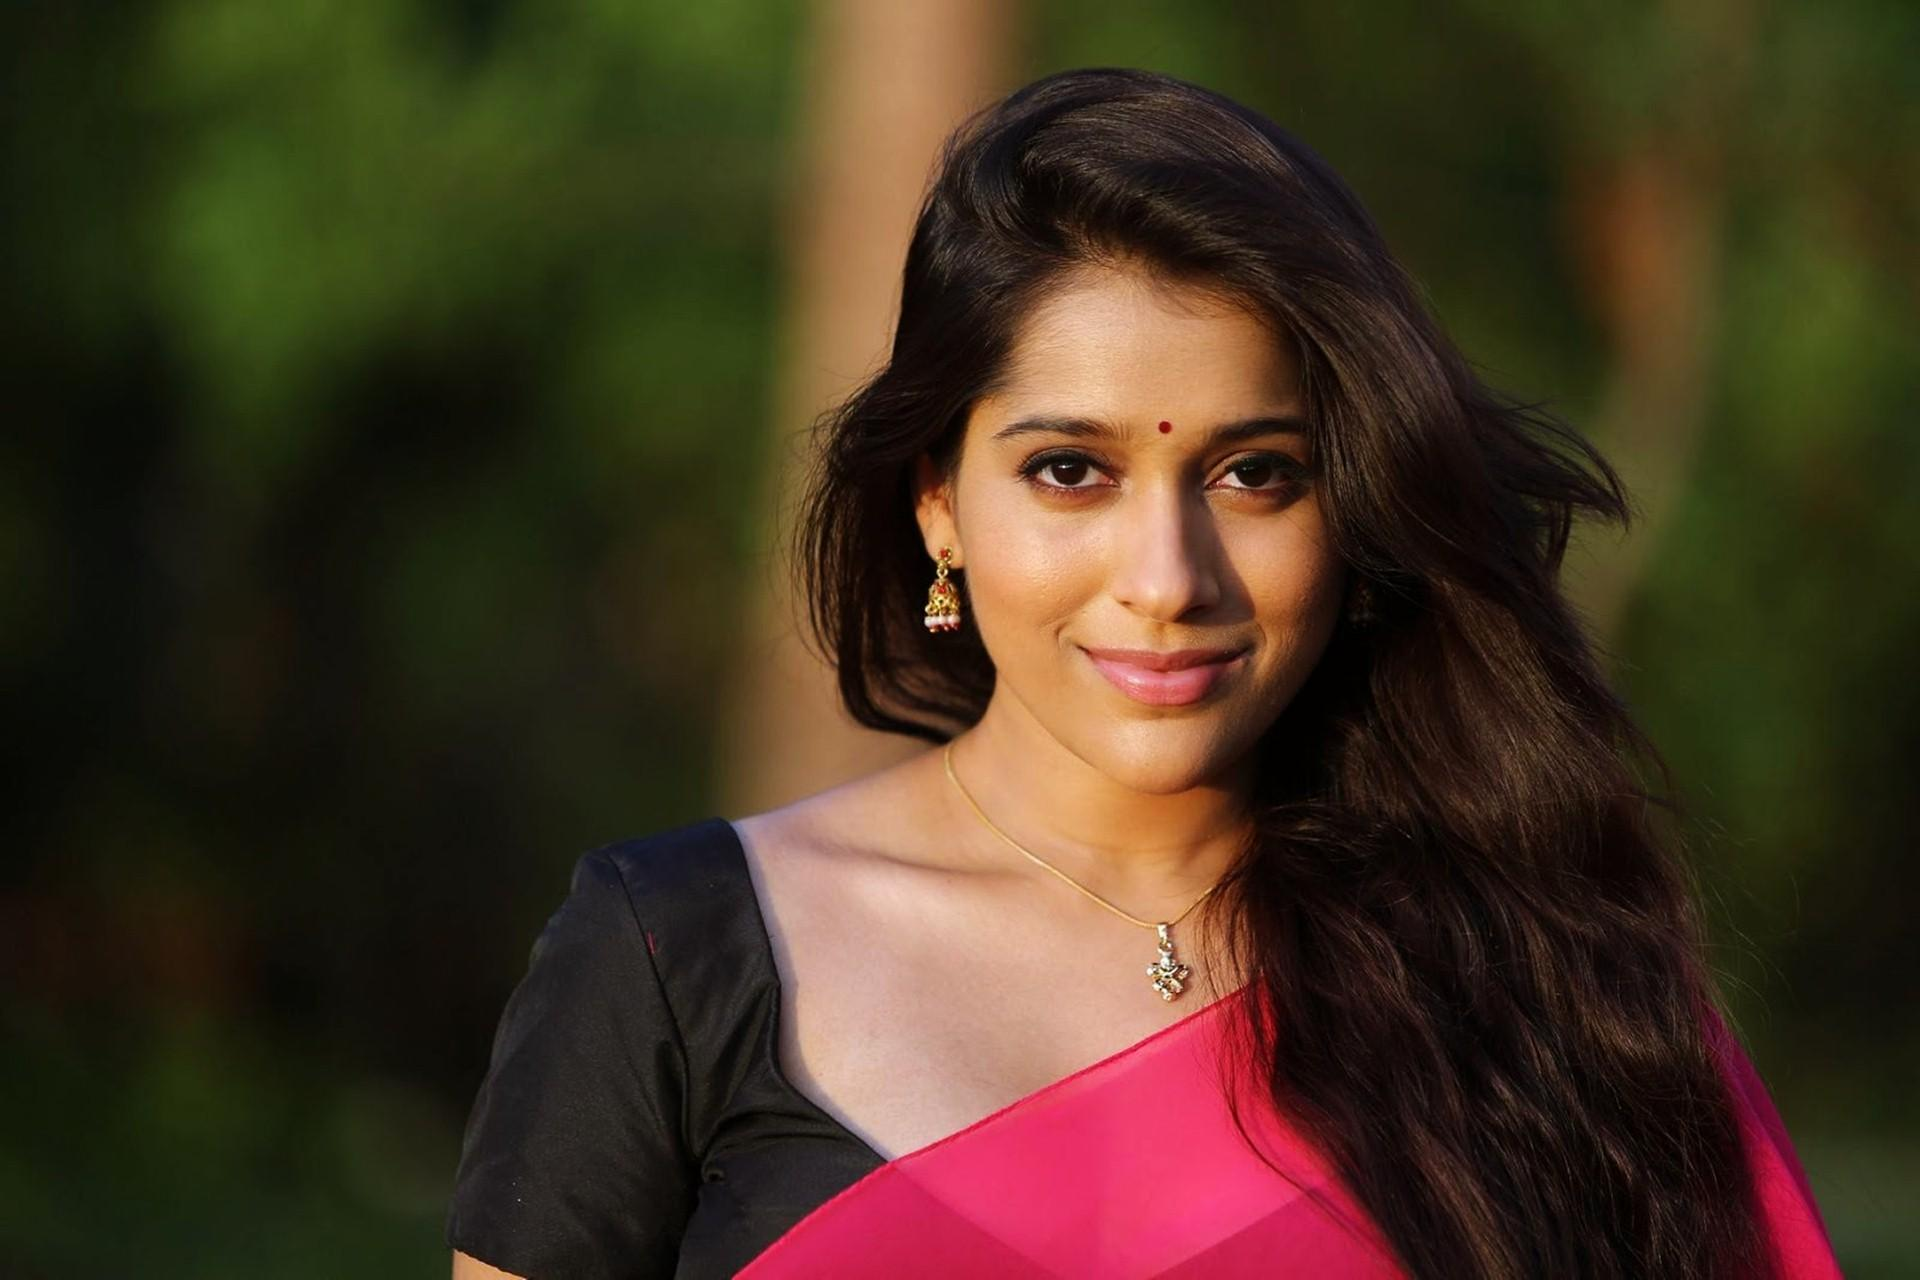 Rashmi Gautam Wallpapers Wallpaper Cave Rashmi gautam wearing saree from the house of thread and fabric. rashmi gautam wallpapers wallpaper cave